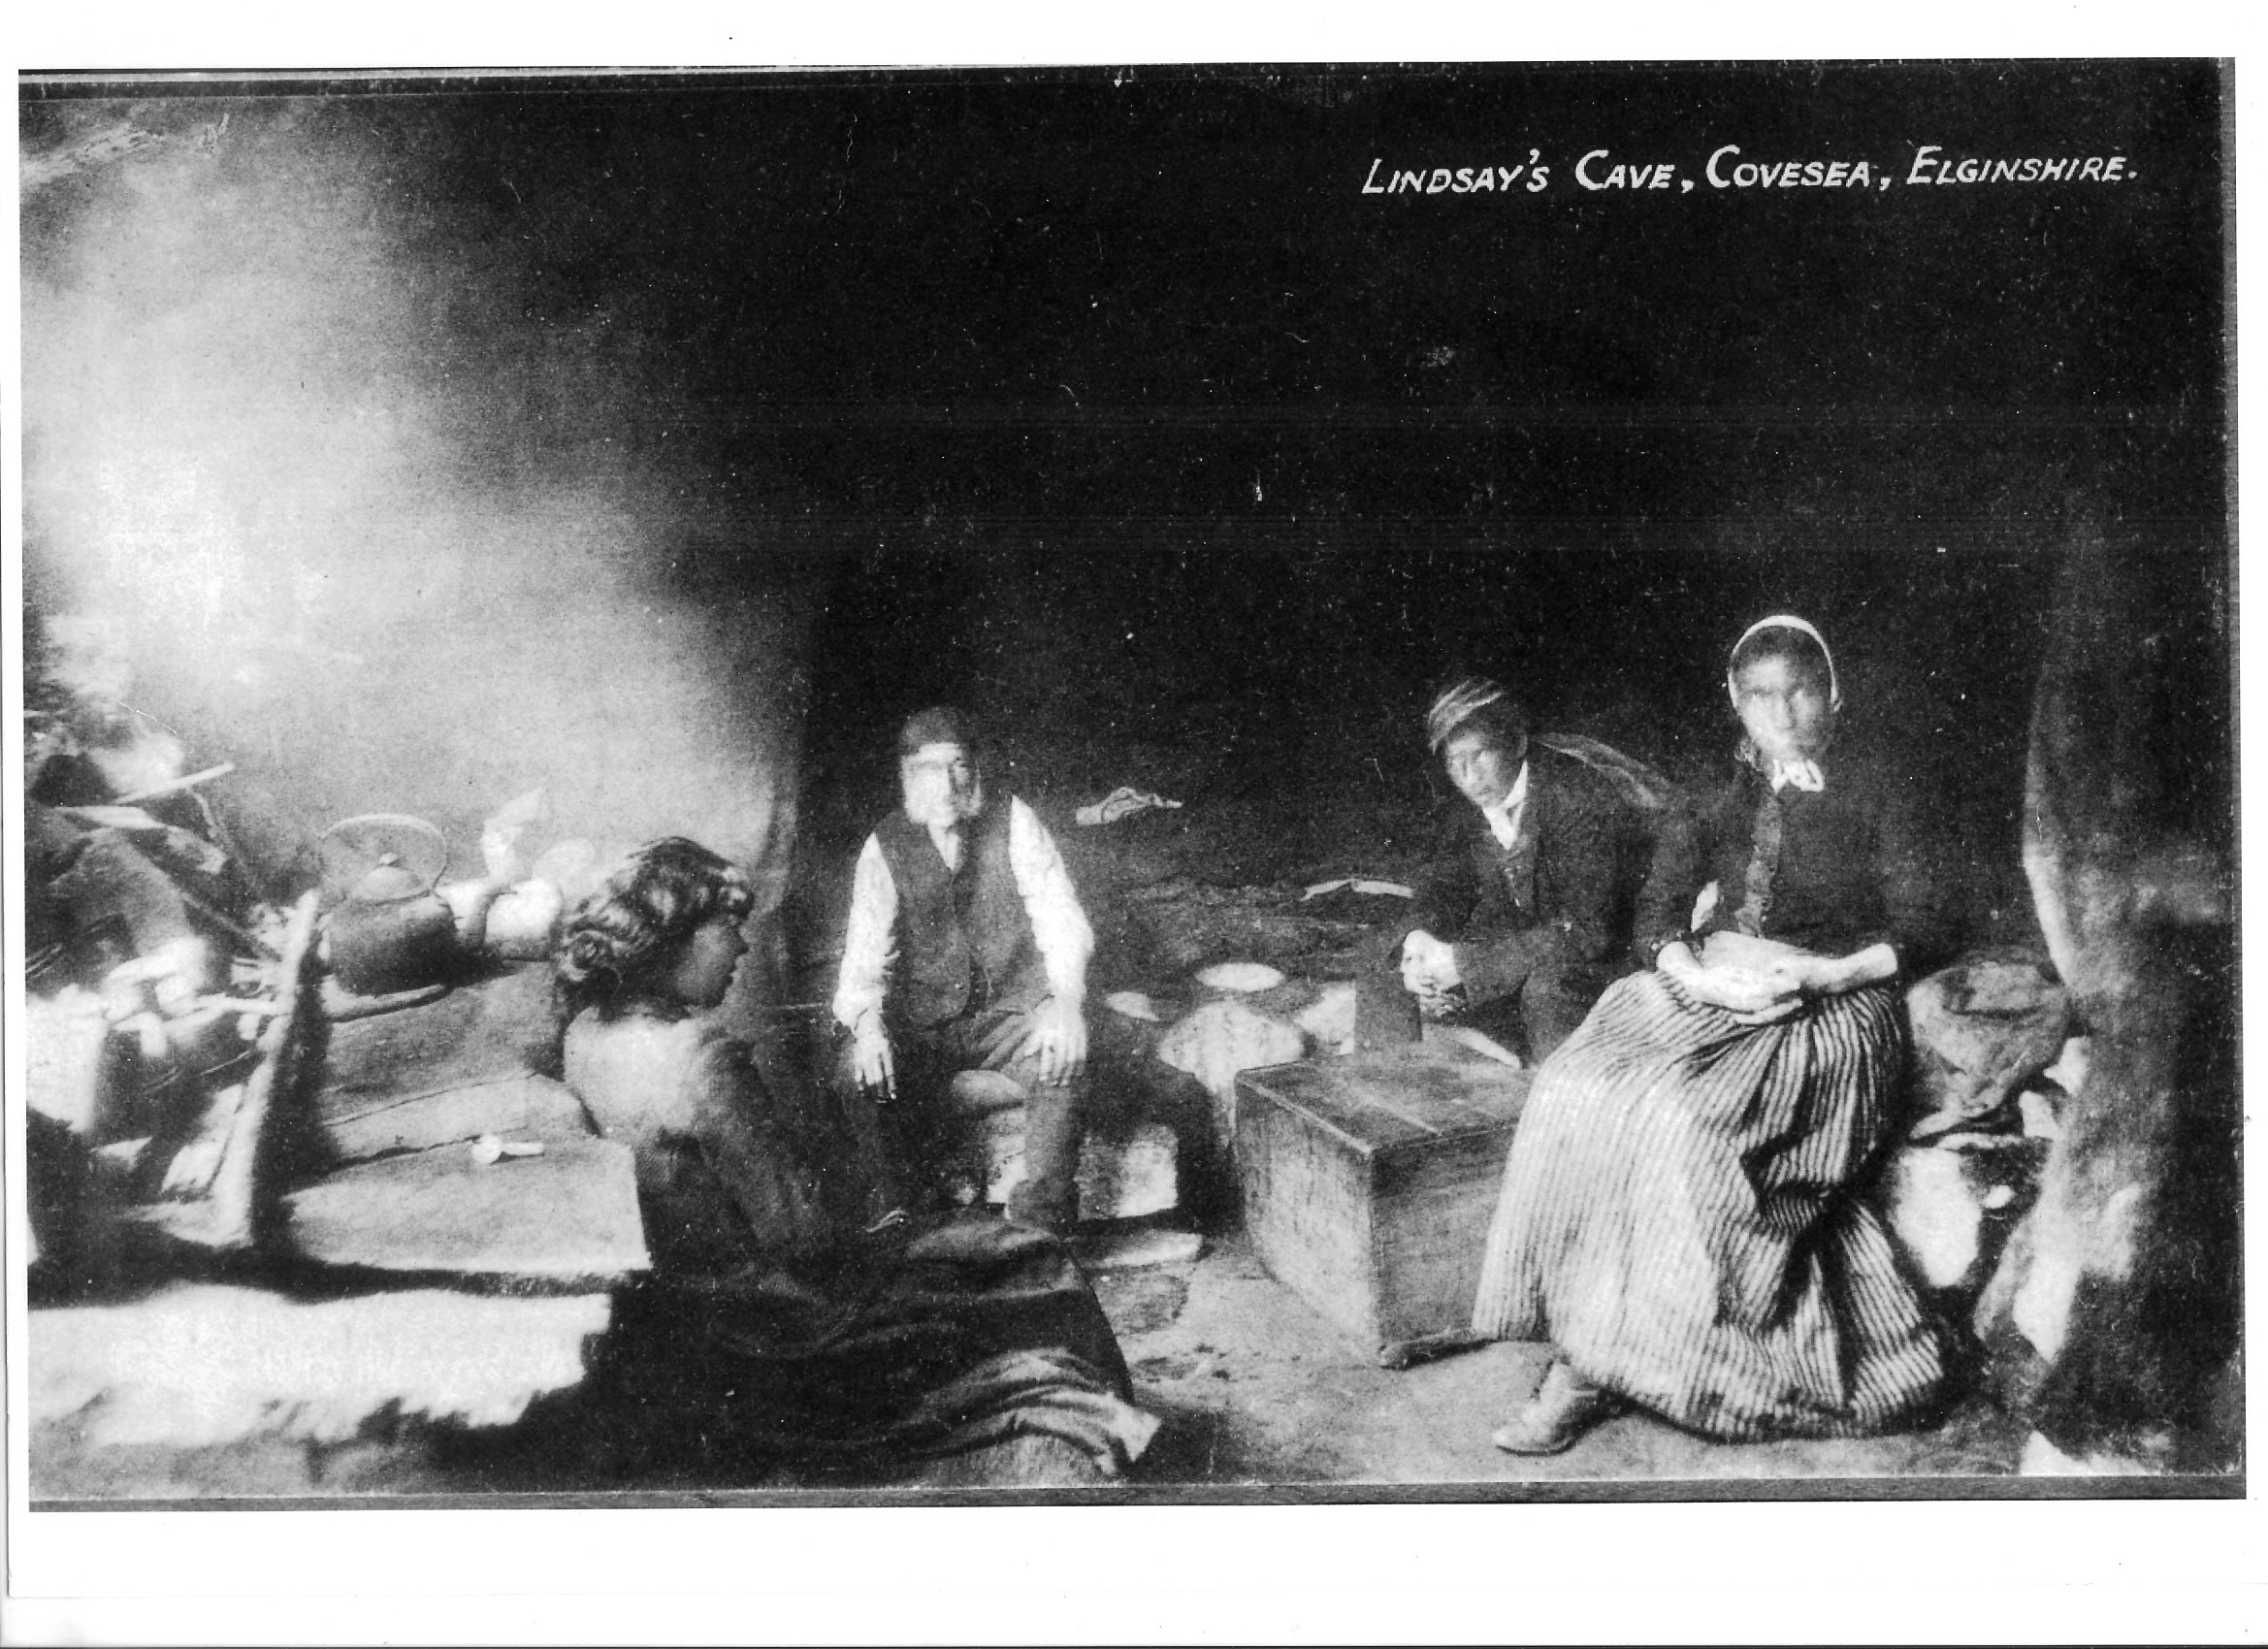 An old photograph of Travellers sitting outside a cave